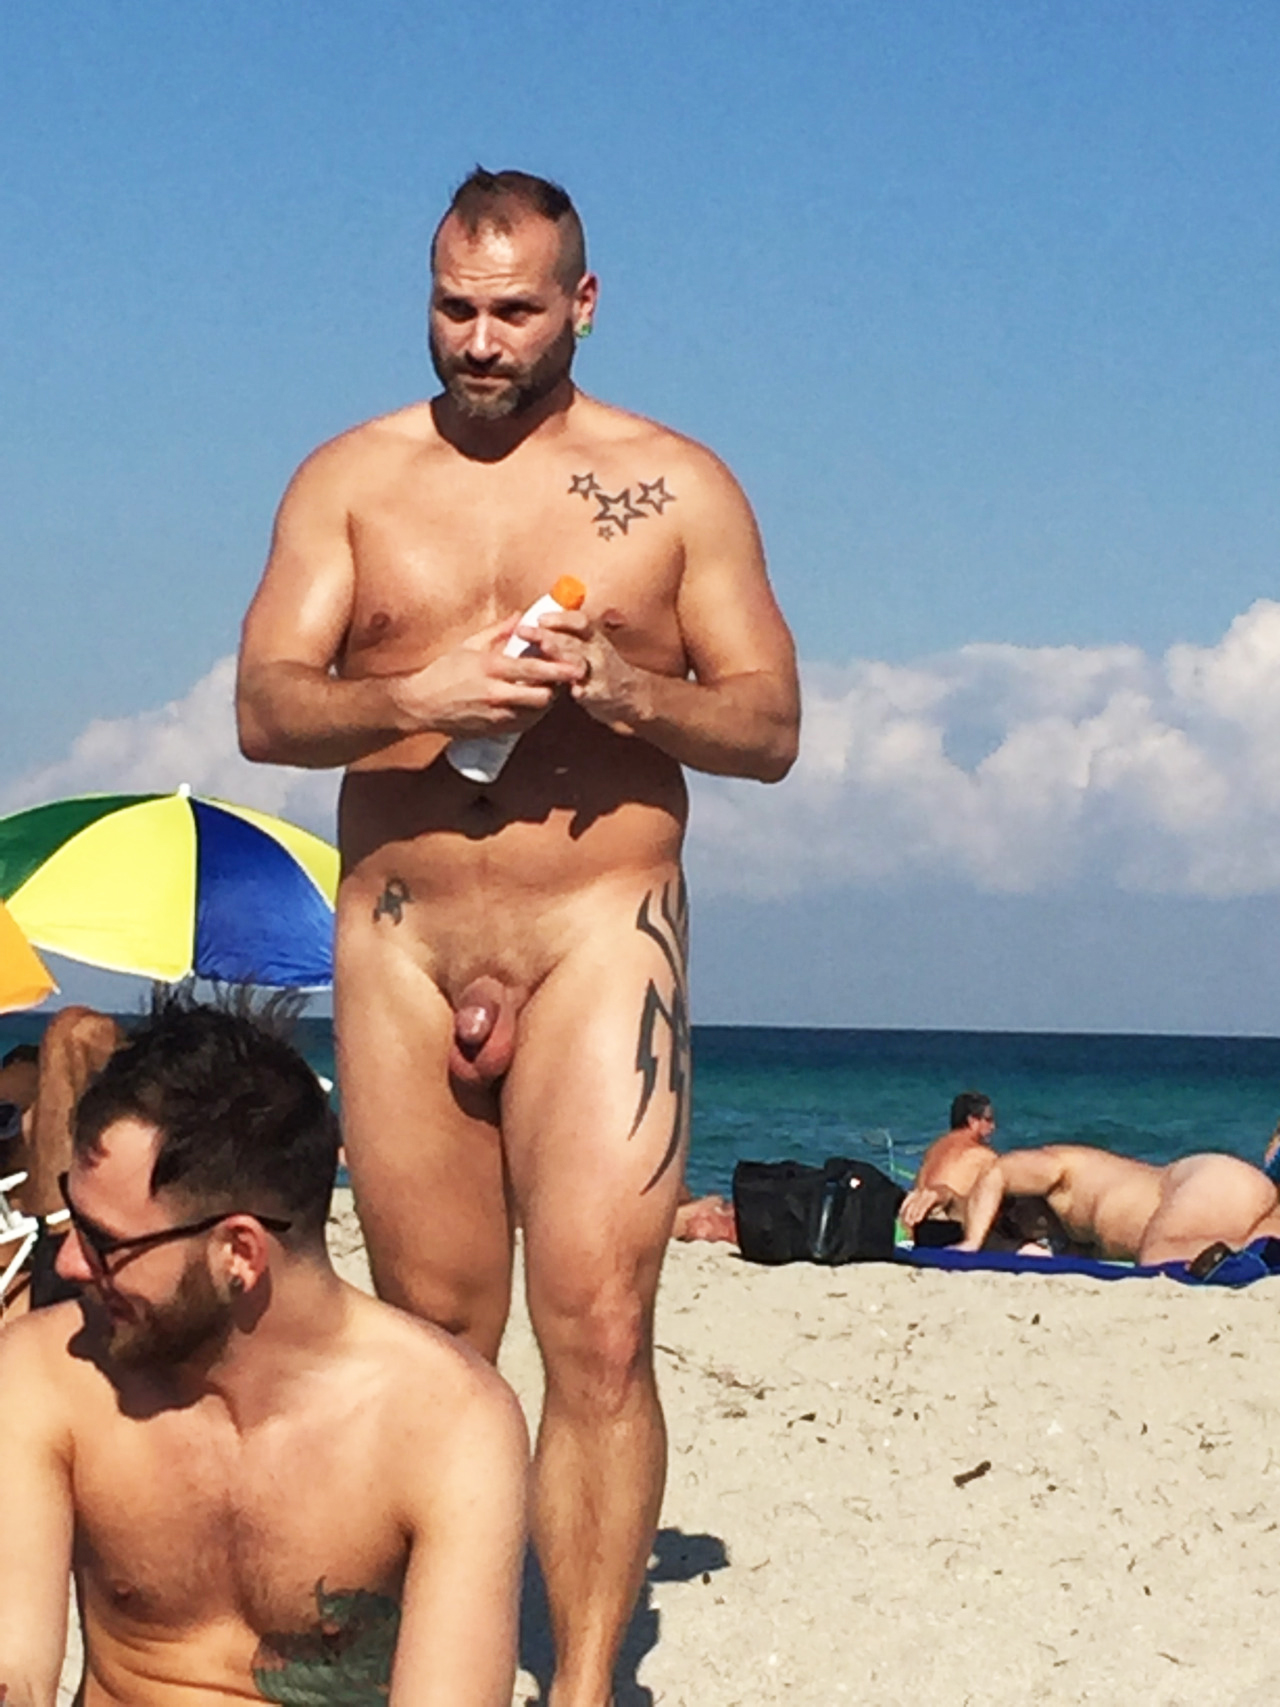 At Beach Men Naked The#3